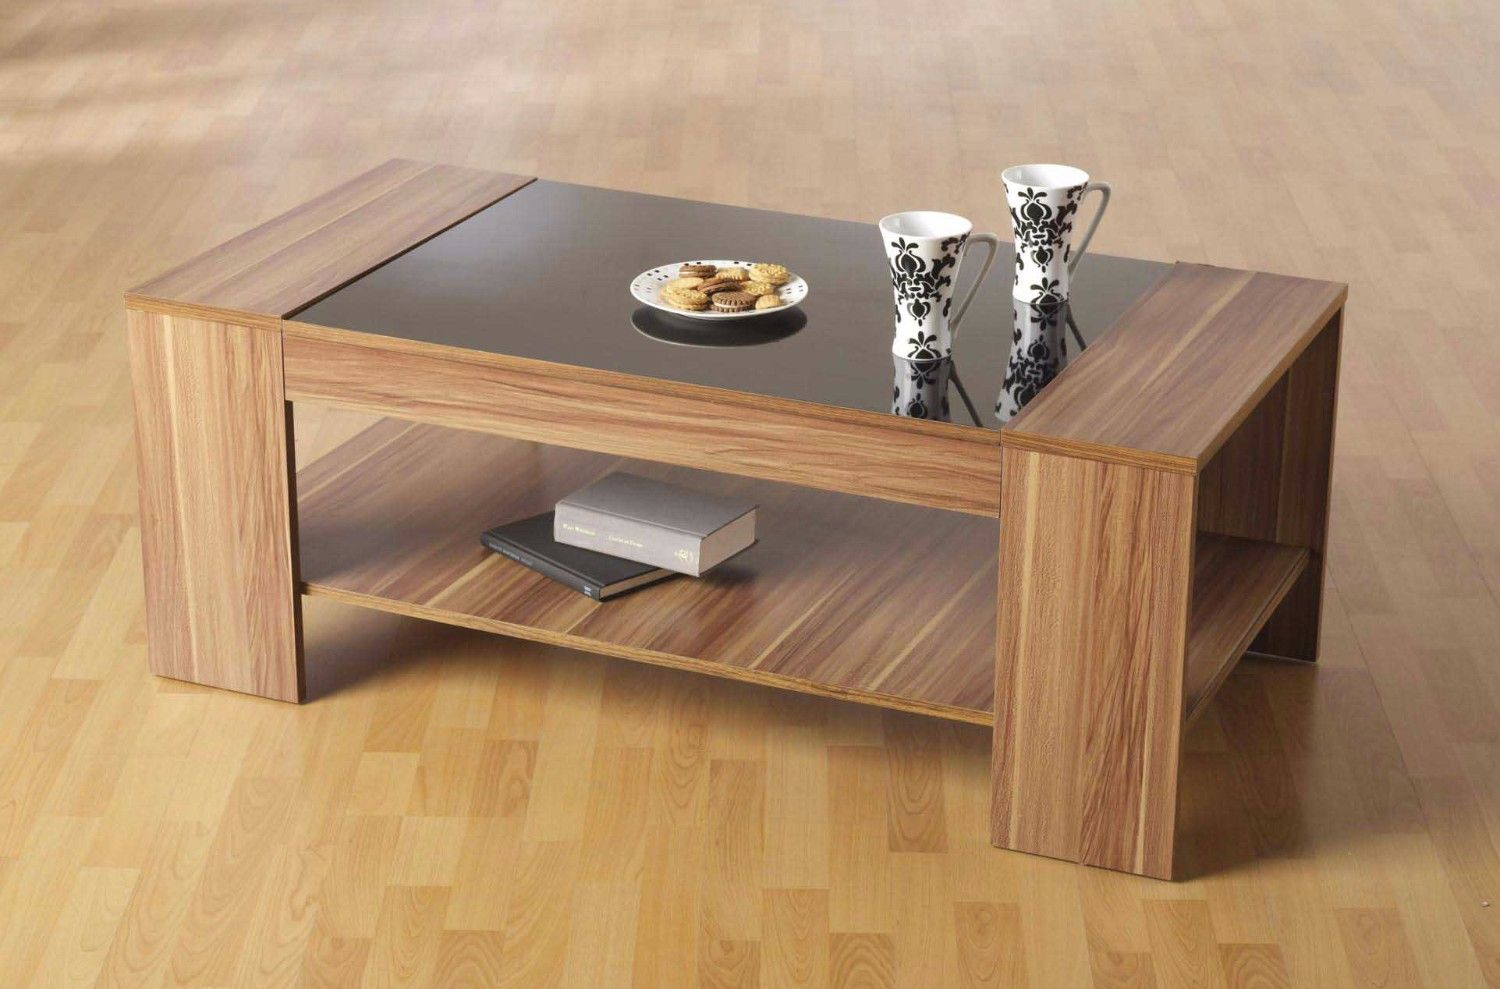 The Best Tips To Get Lovely Coffee And Side Tables Coffee Side Tables Coffee Table Design Coffee Table Design Modern Unusual Coffee Tables [ 989 x 1500 Pixel ]